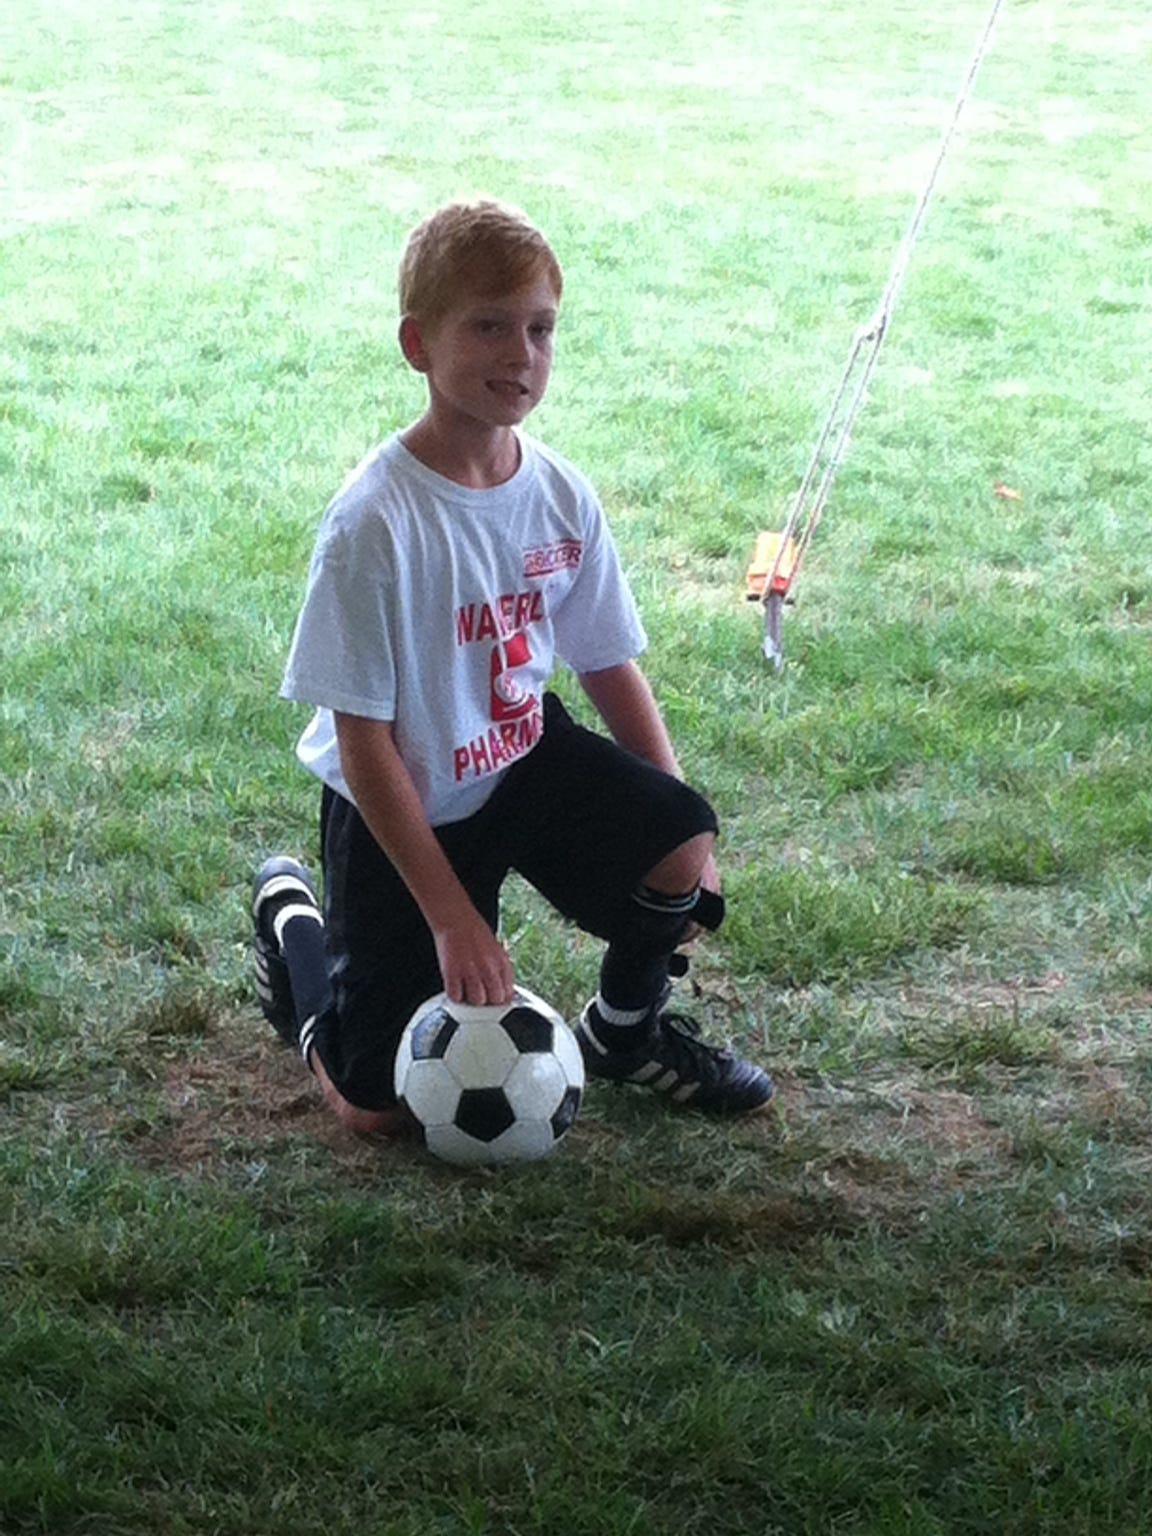 Candon Westervelt posing with a soccer ball in September